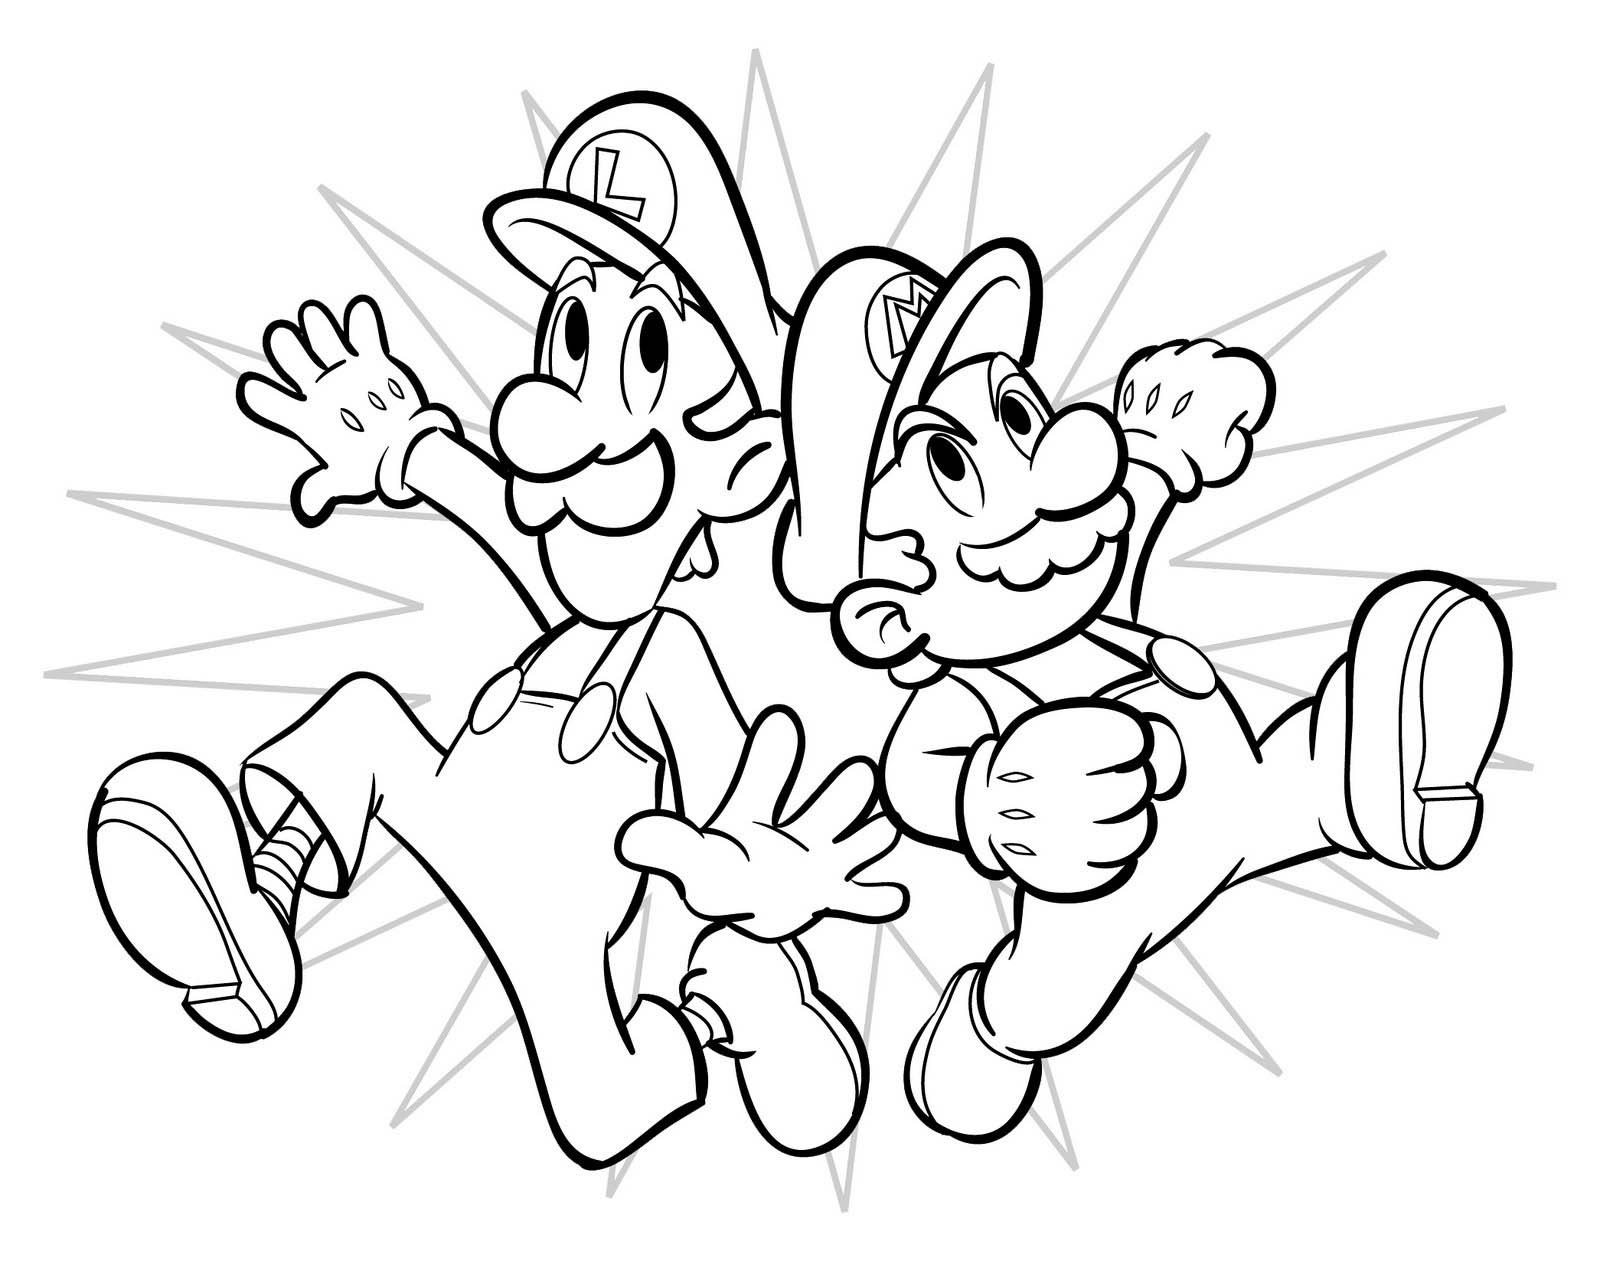 luigi and mario coloring pages. Black Bedroom Furniture Sets. Home Design Ideas